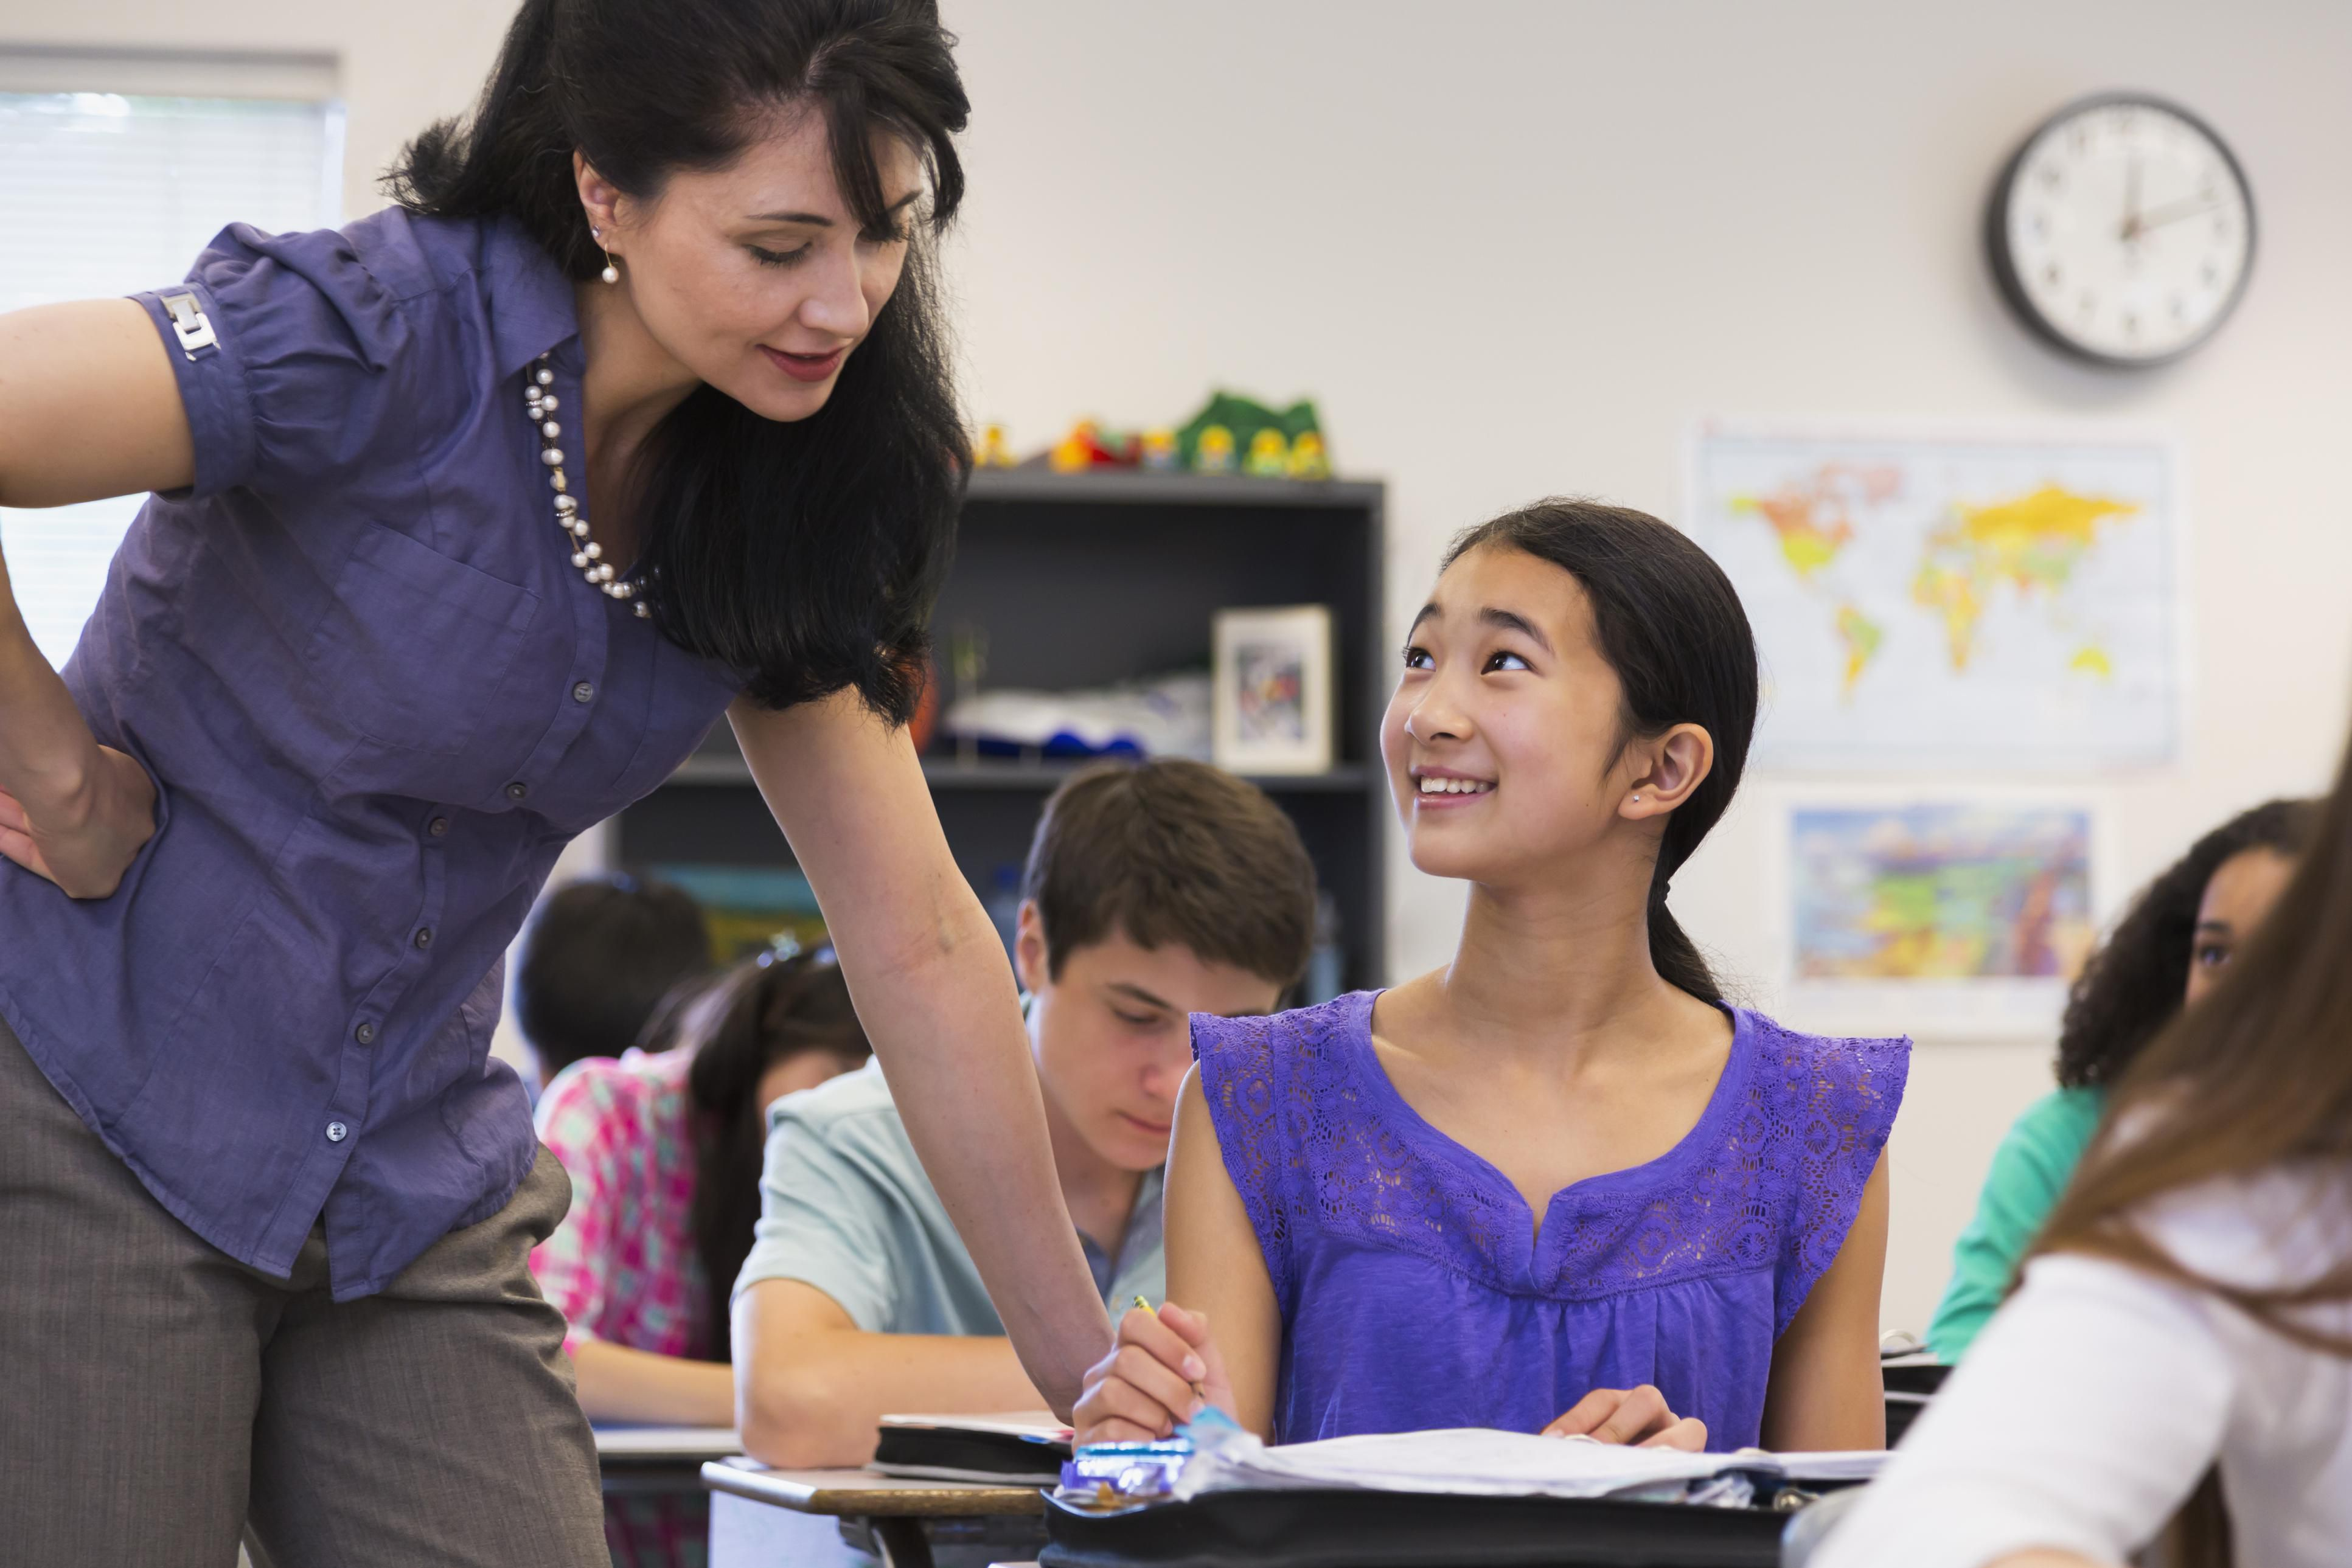 Helping Students With Learning Disabilities Succeed